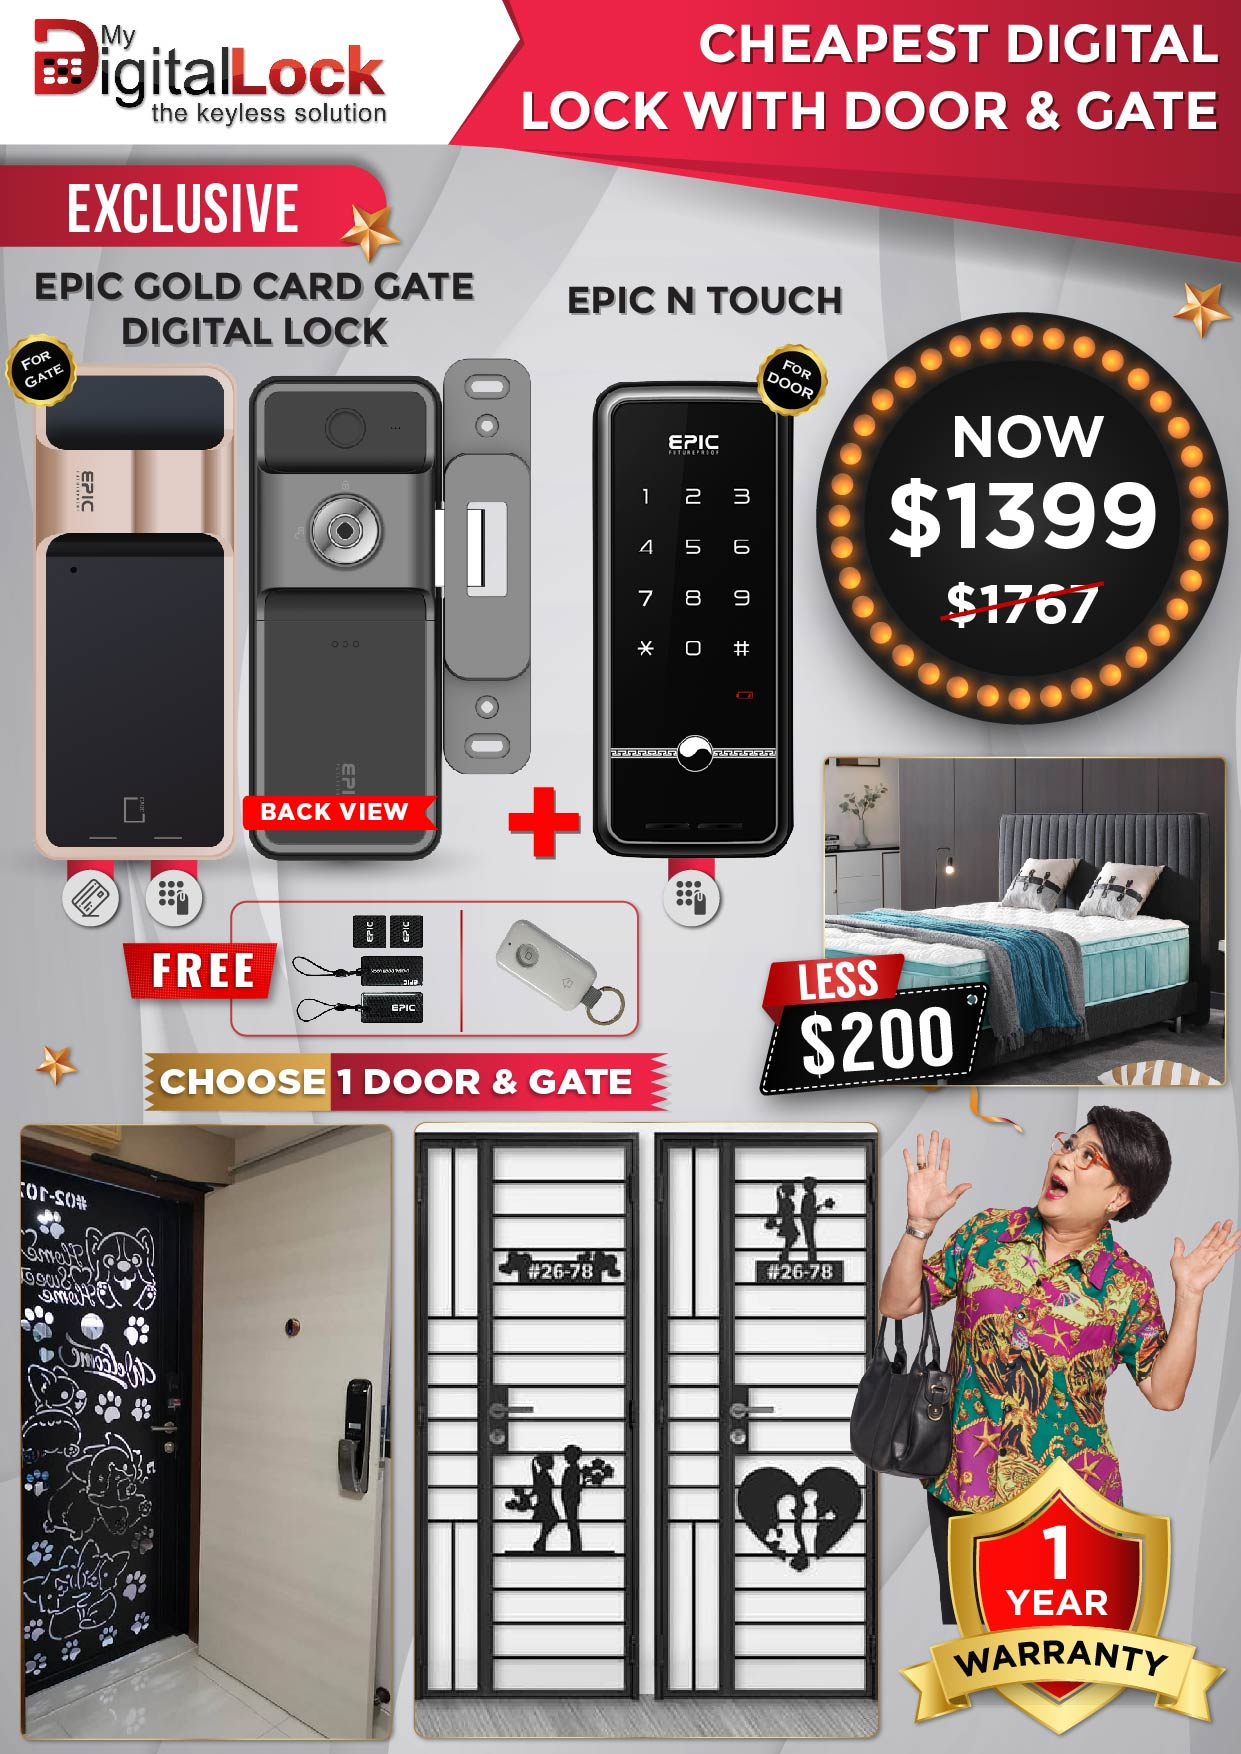 EPIC Gold Card Gate and N Touch Digital Lock with Door and Gate